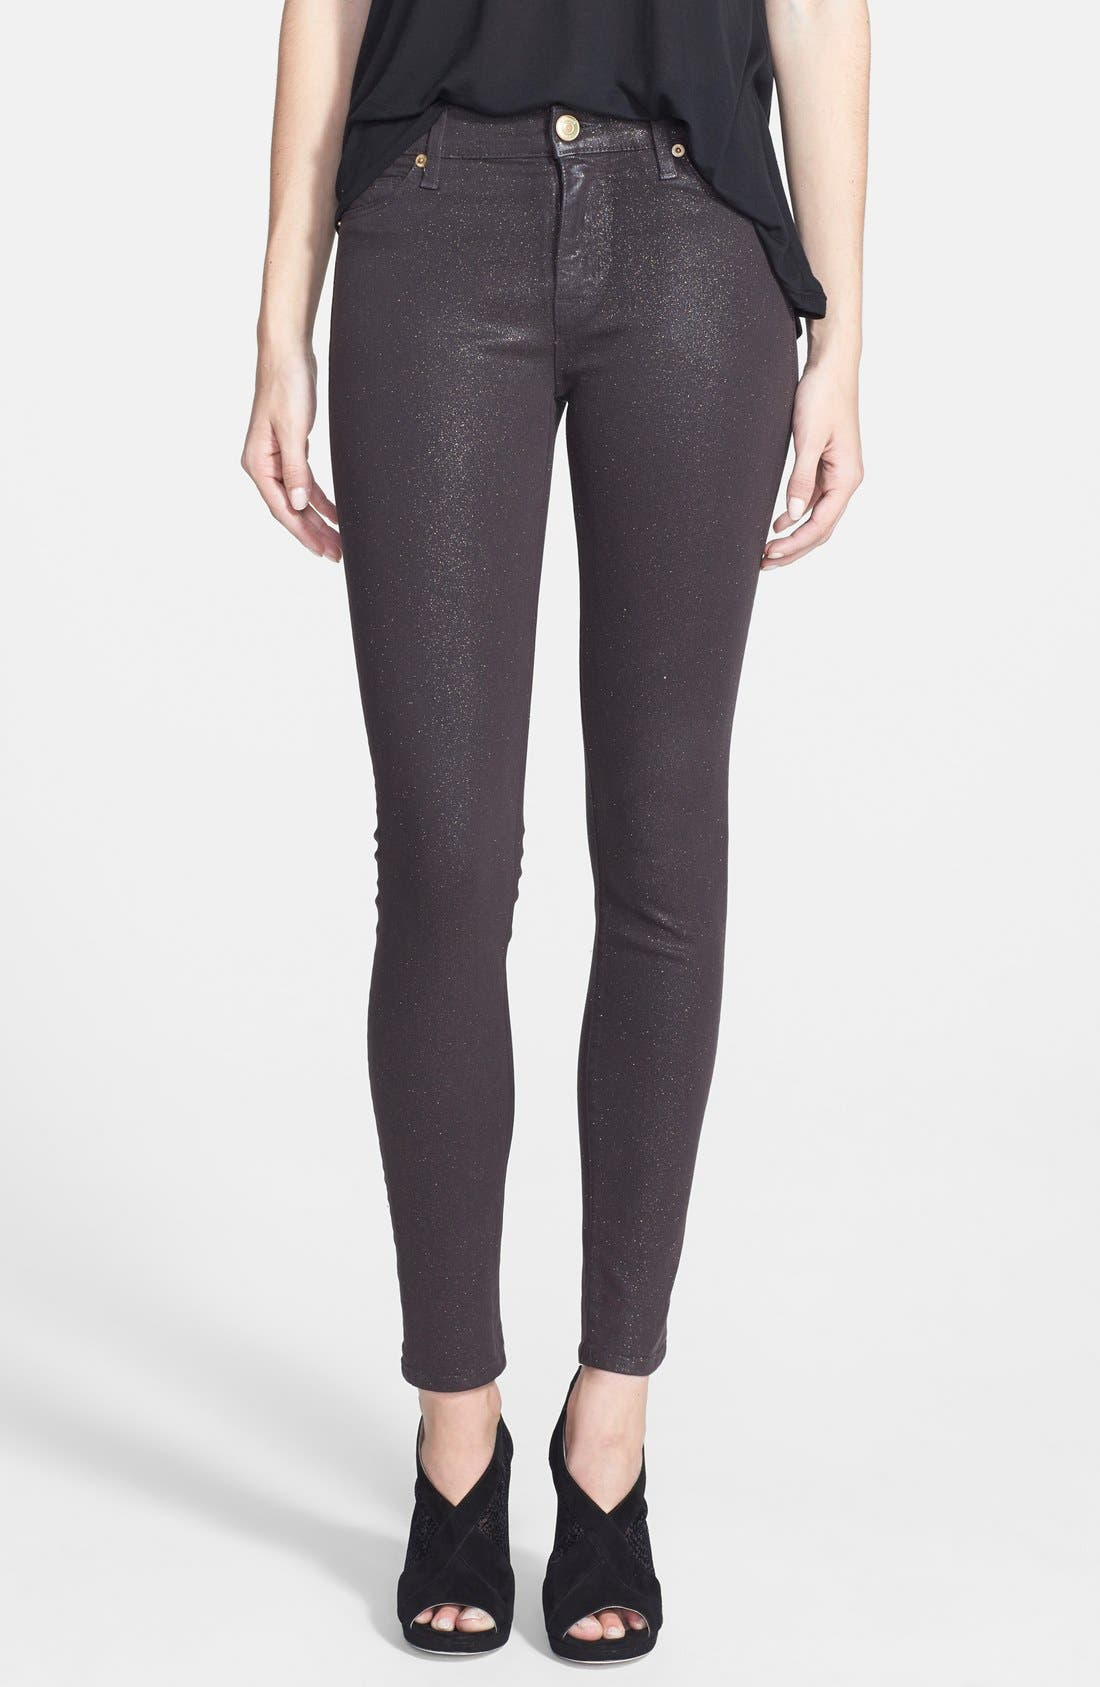 Alternate Image 1 Selected - Hudson Jeans 'Nico' Skinny Stretch Jeans (Tactics)